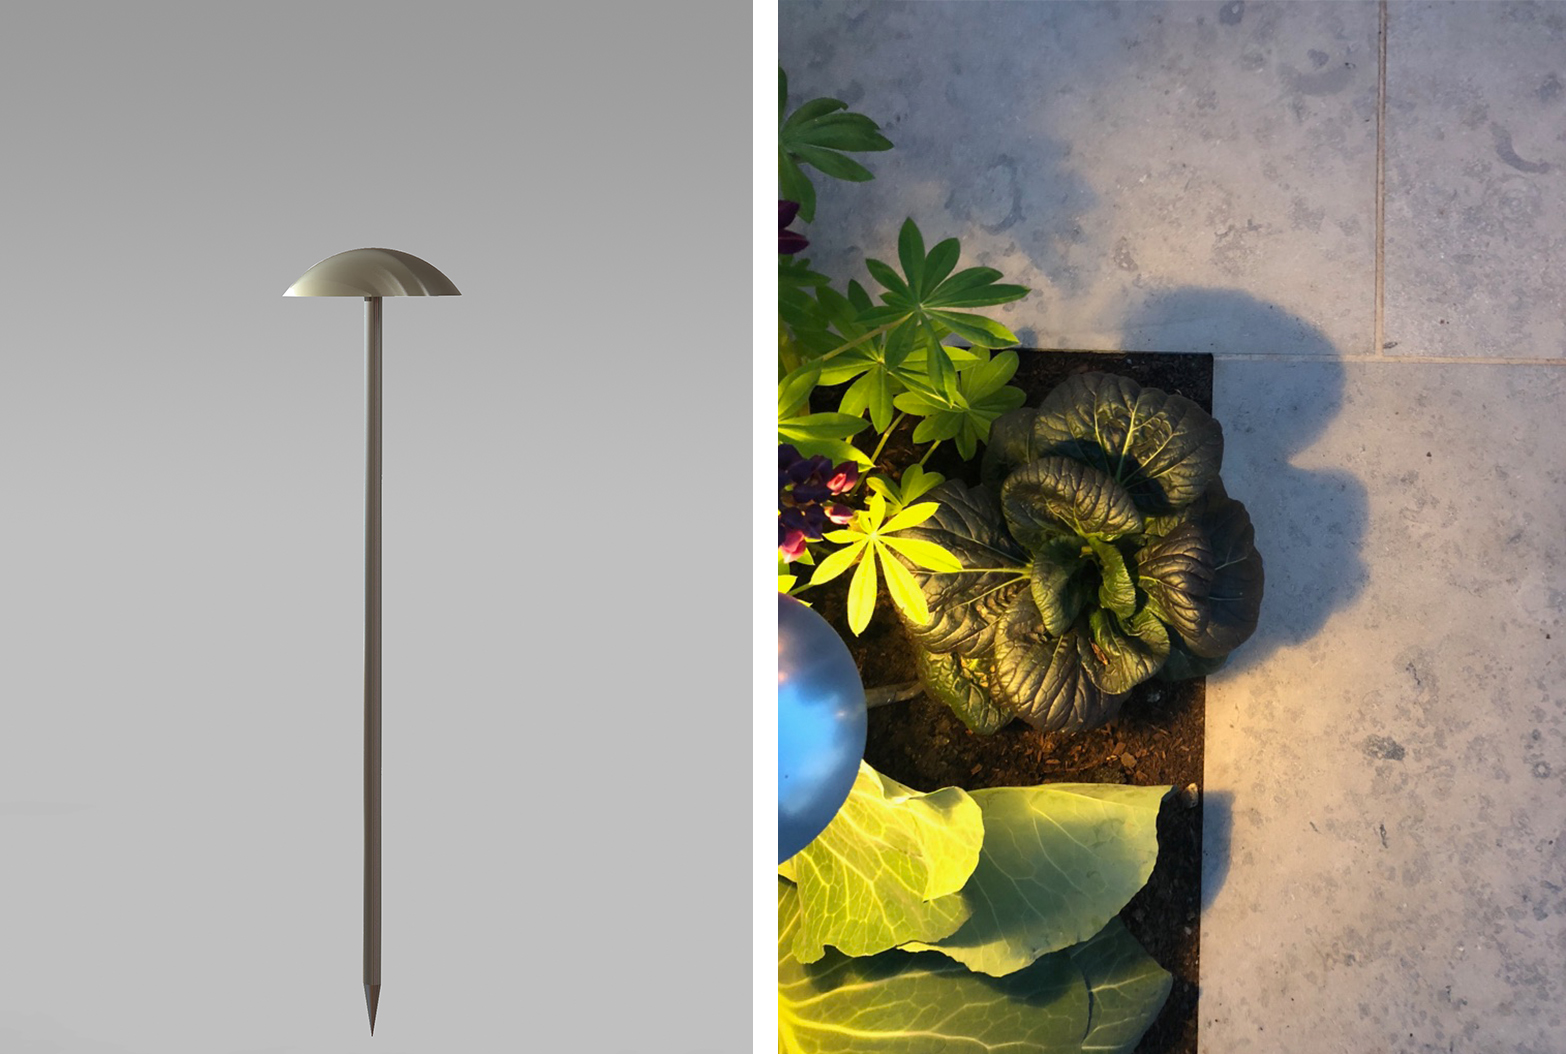 Portobello mushroom light insitu and product image Chelsea Flower show